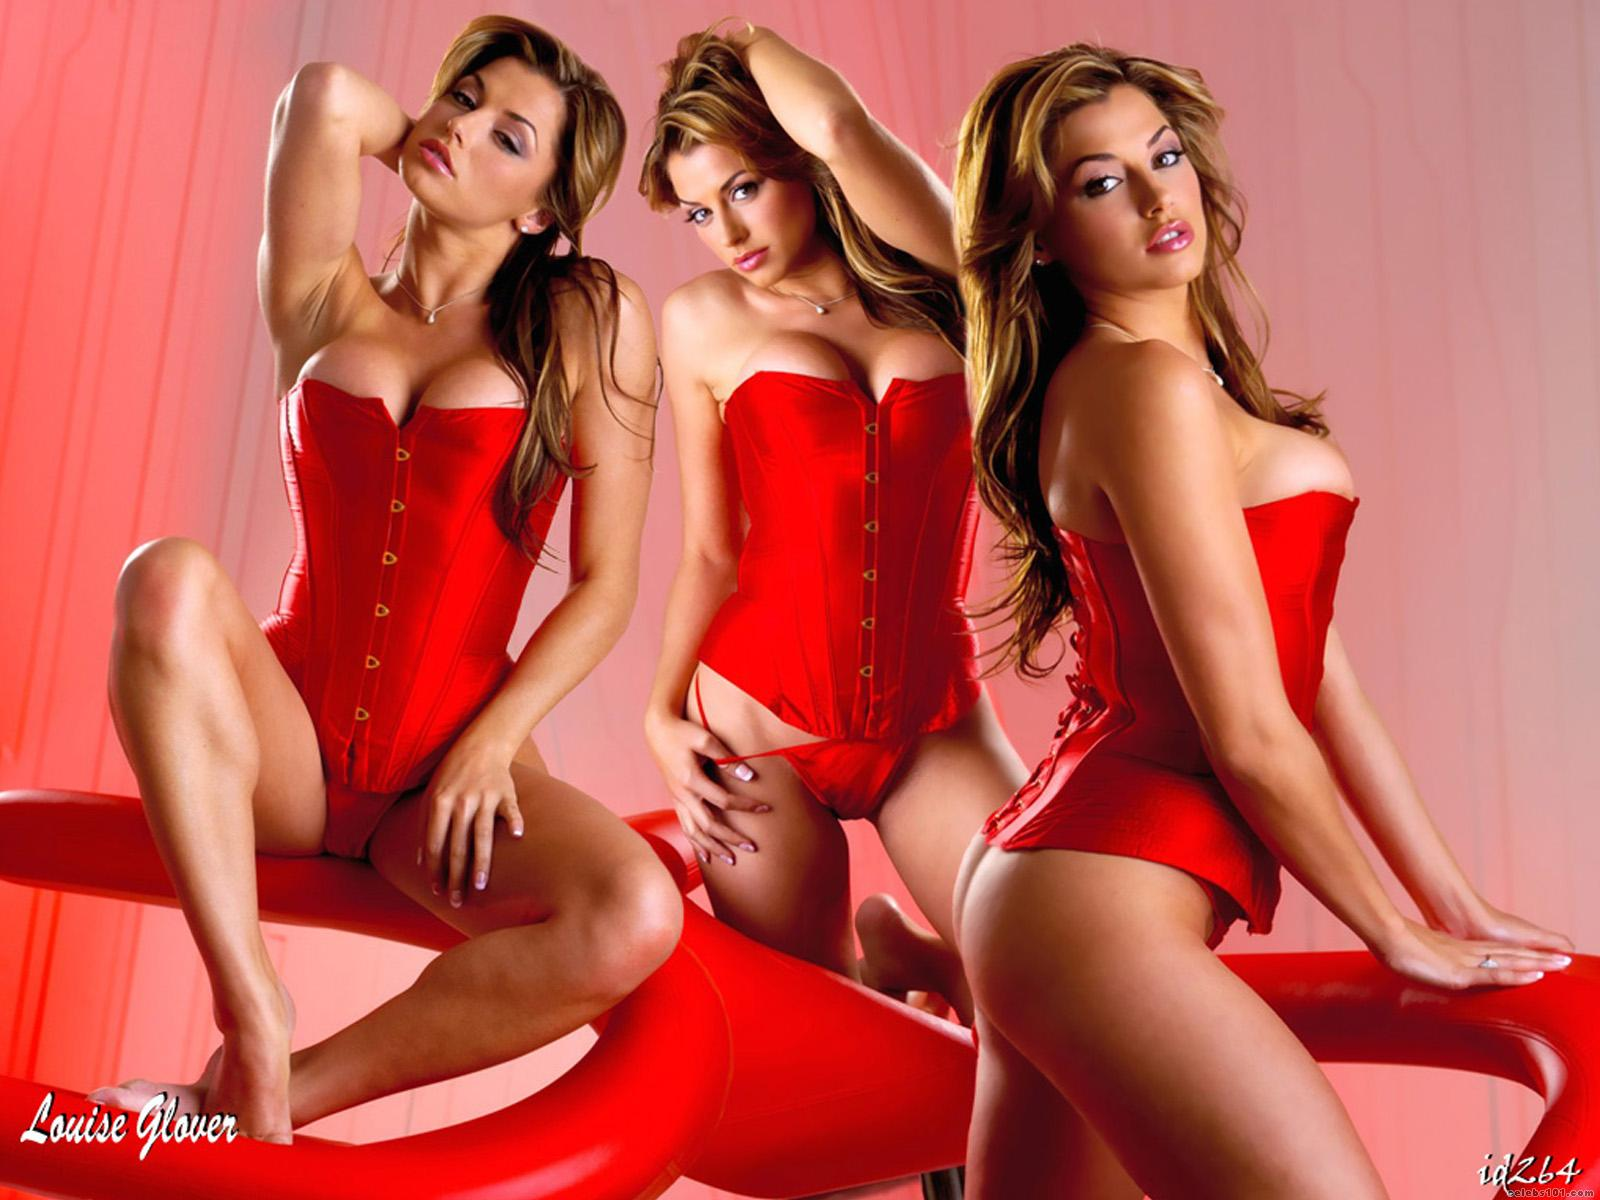 http://www.celebs101.com/wallpapers/Louise_Glover/180556/46027.jpg